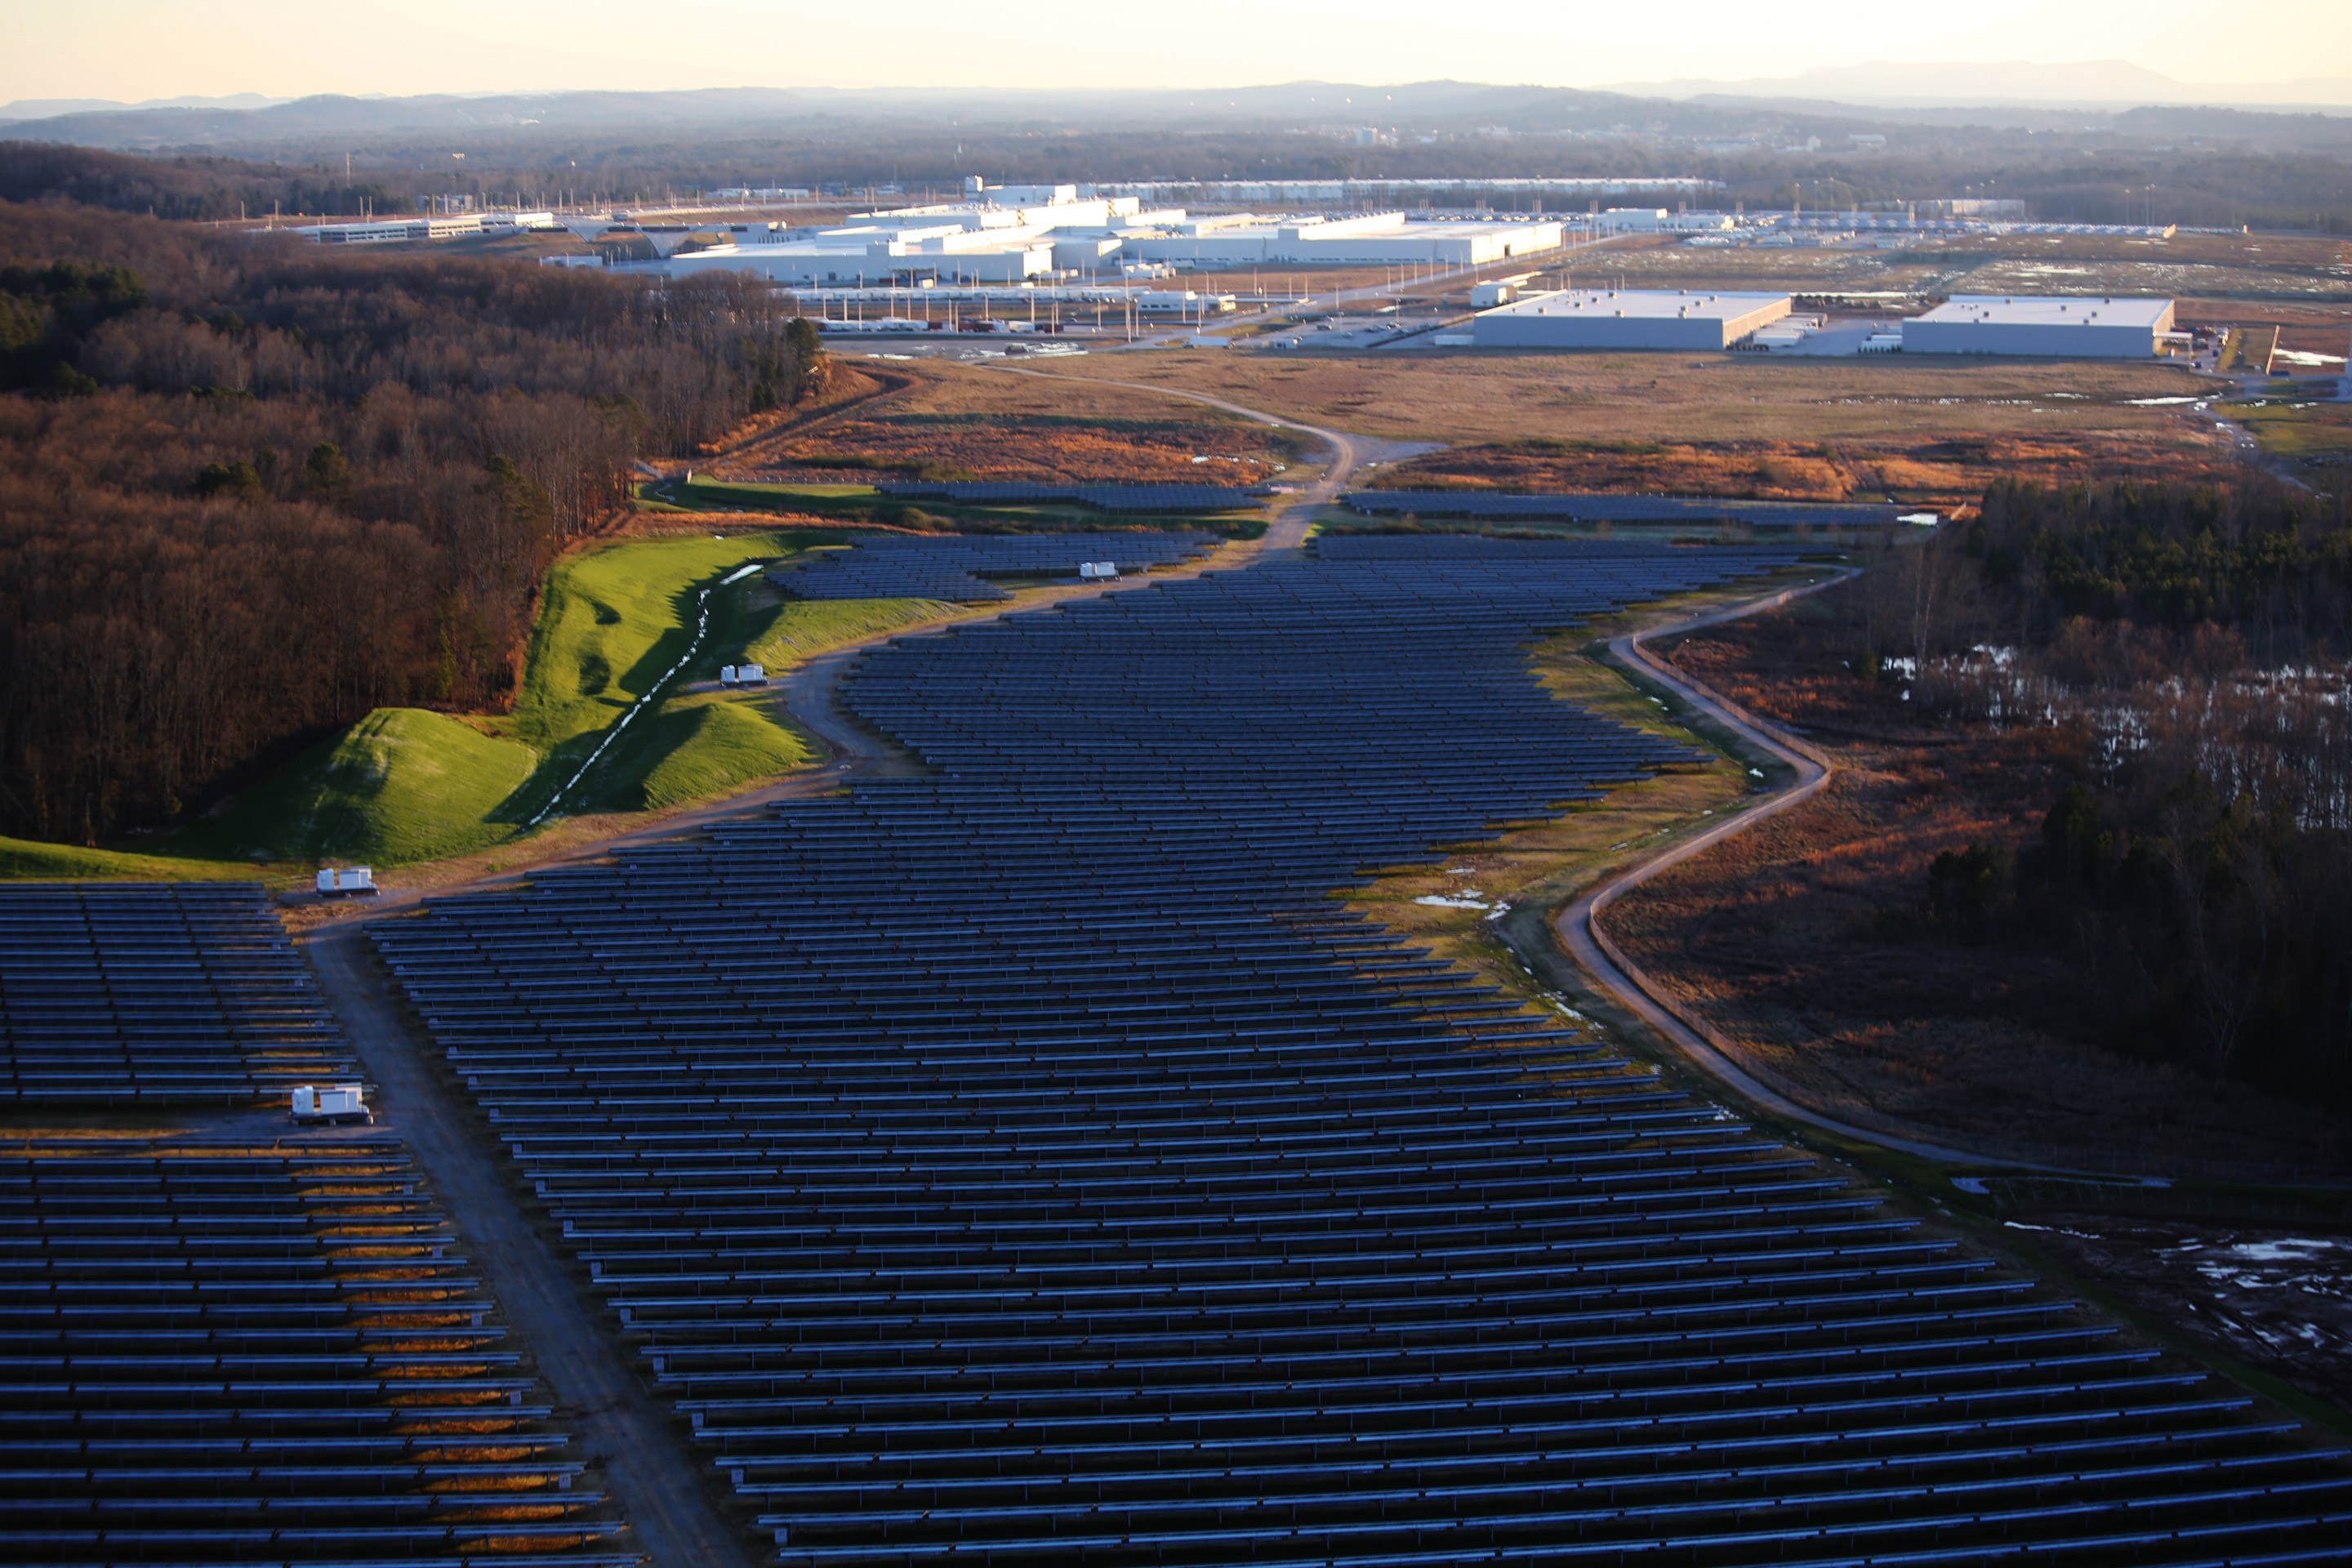 vw chattanooga solar farm 2 110x60